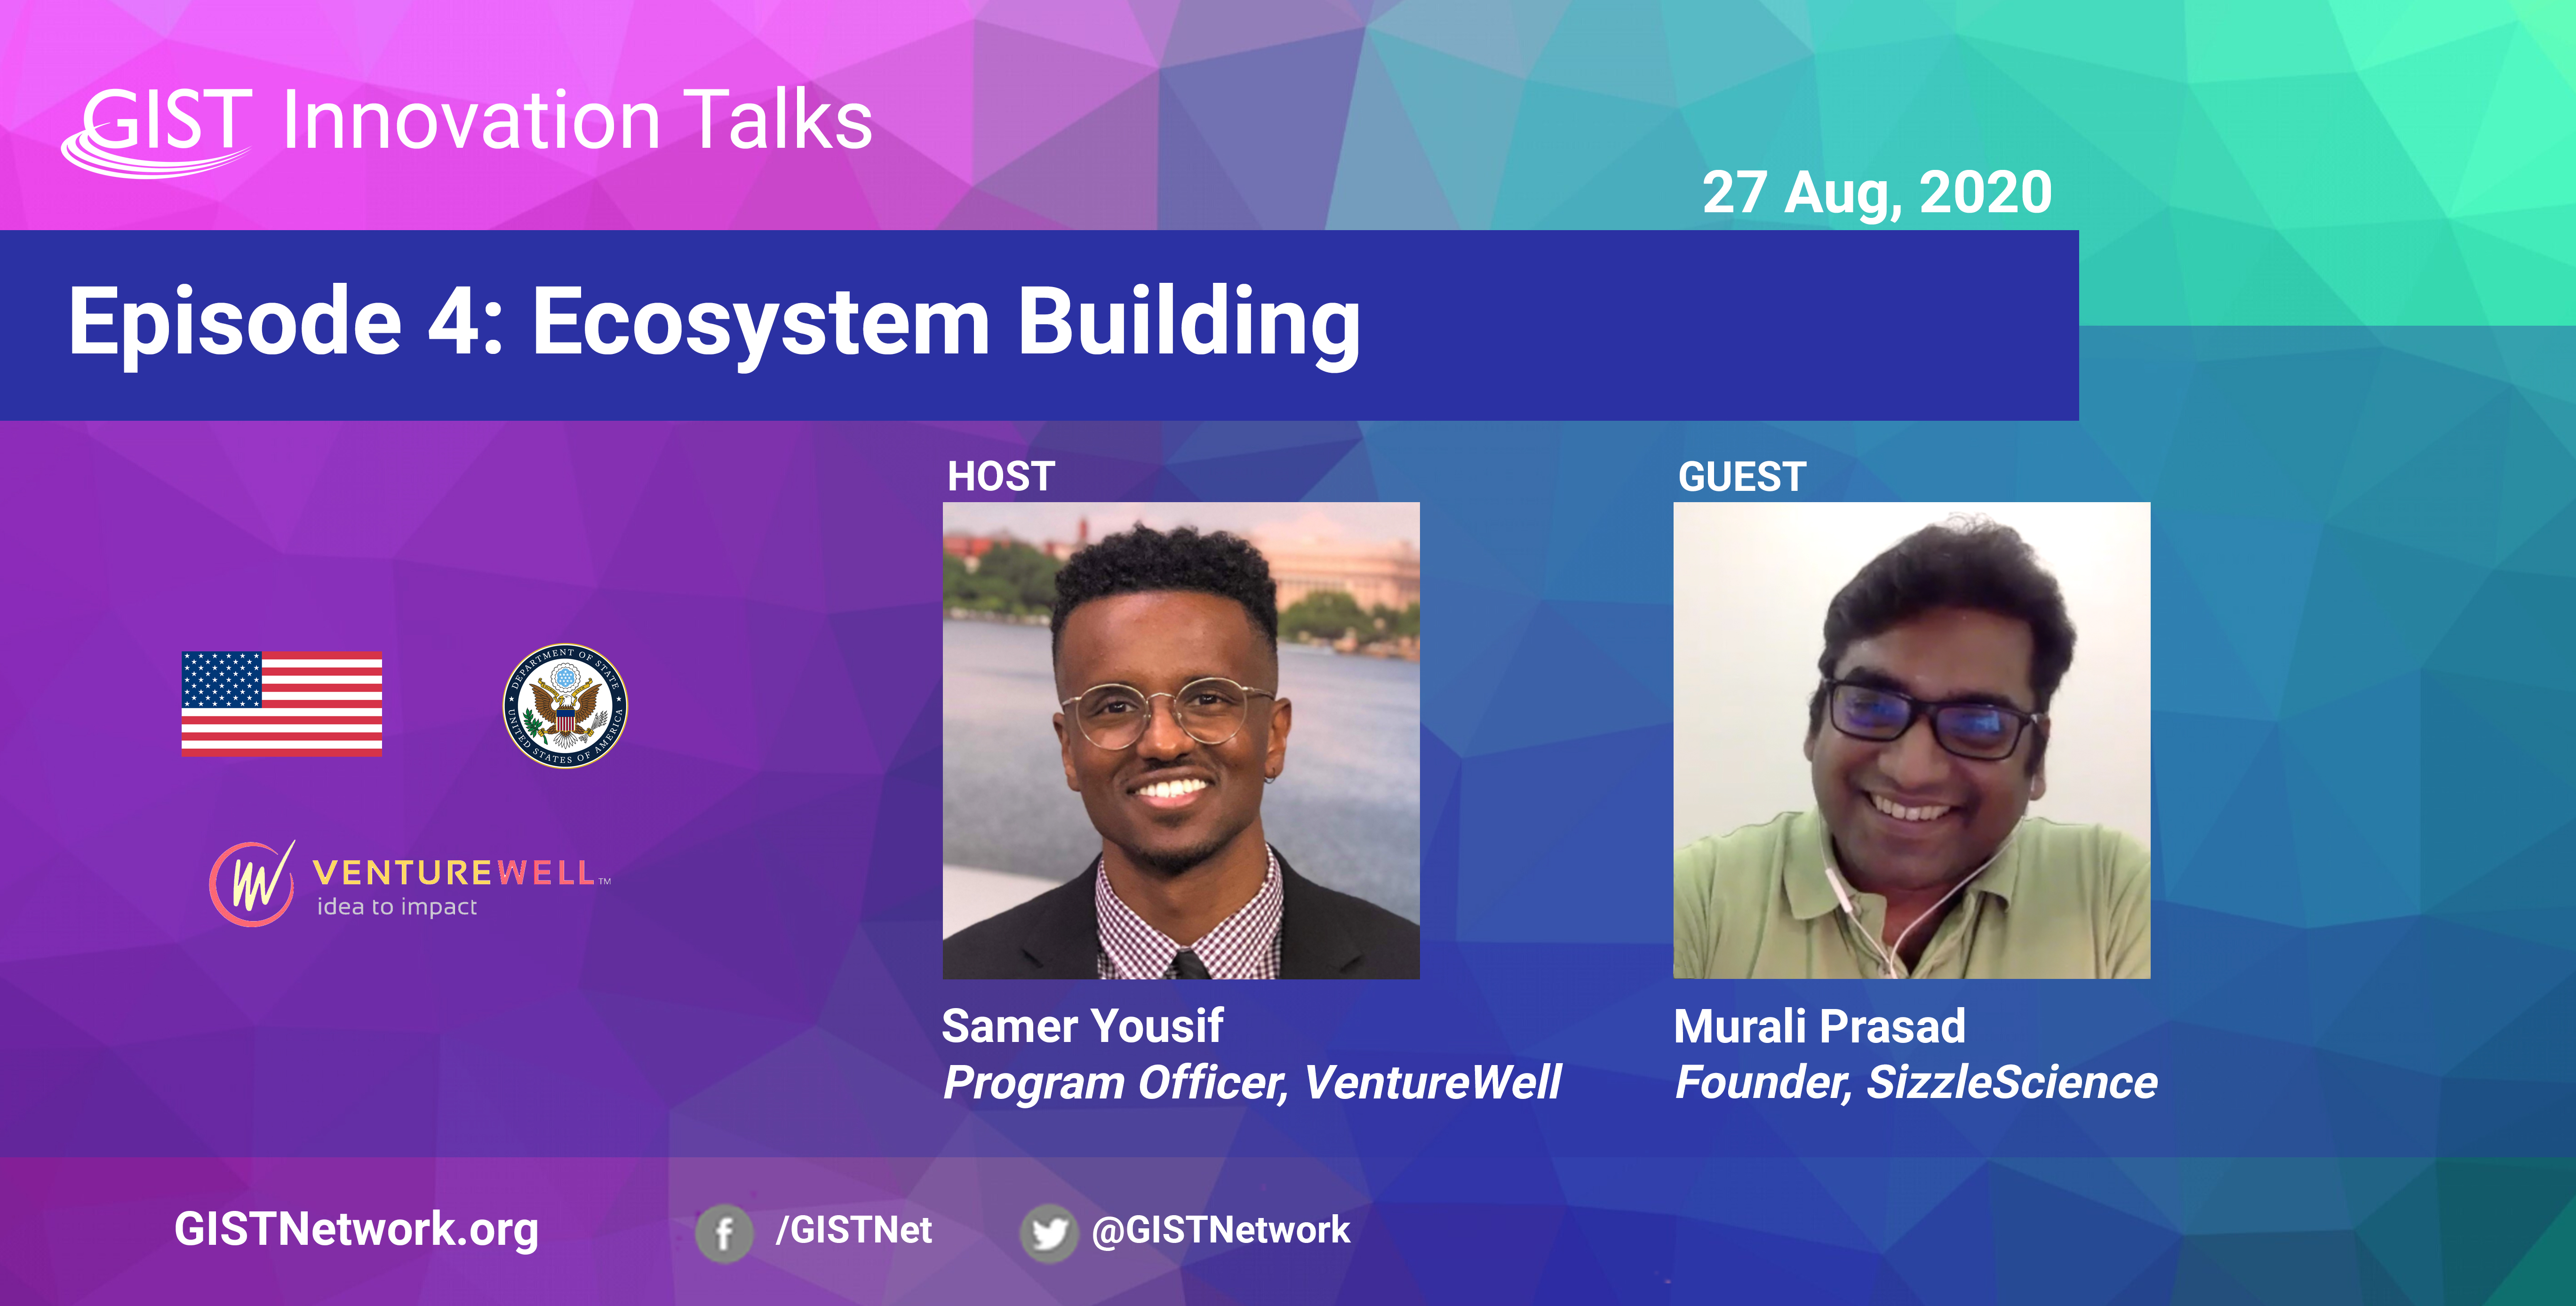 GIST Innovation Talks Episode 4: Ecosystem Building